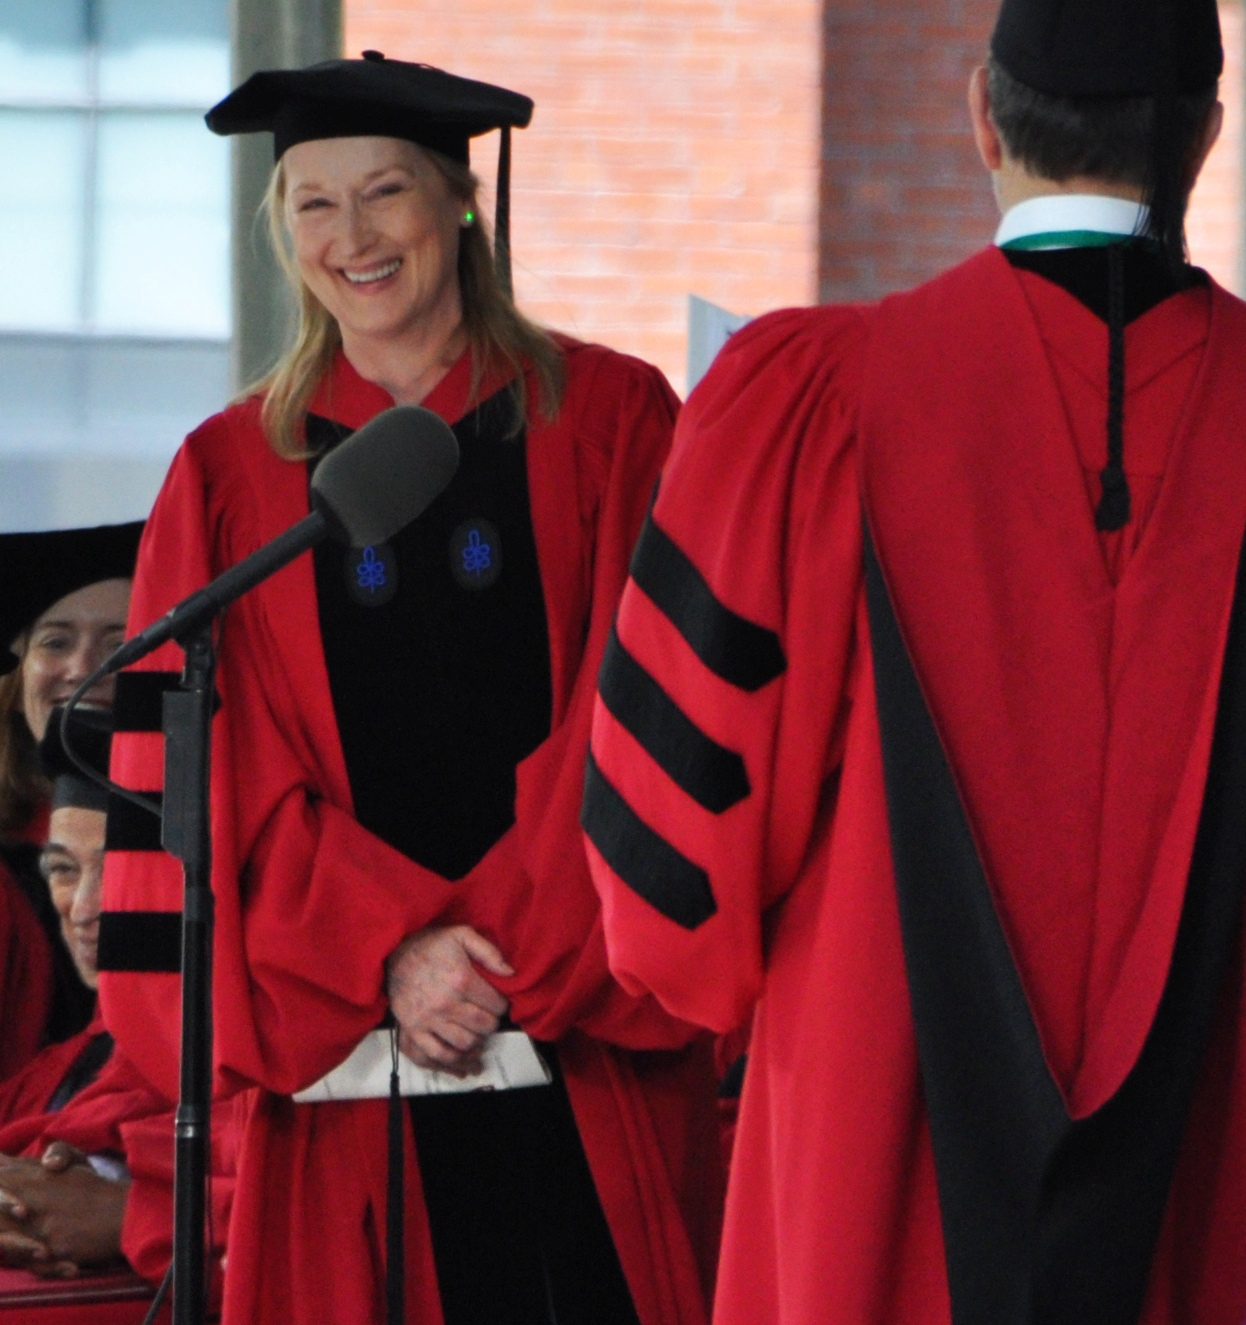 http://upload.wikimedia.org/wikipedia/commons/d/dd/Meryl_streep_harvard_commencement_2010.JPG